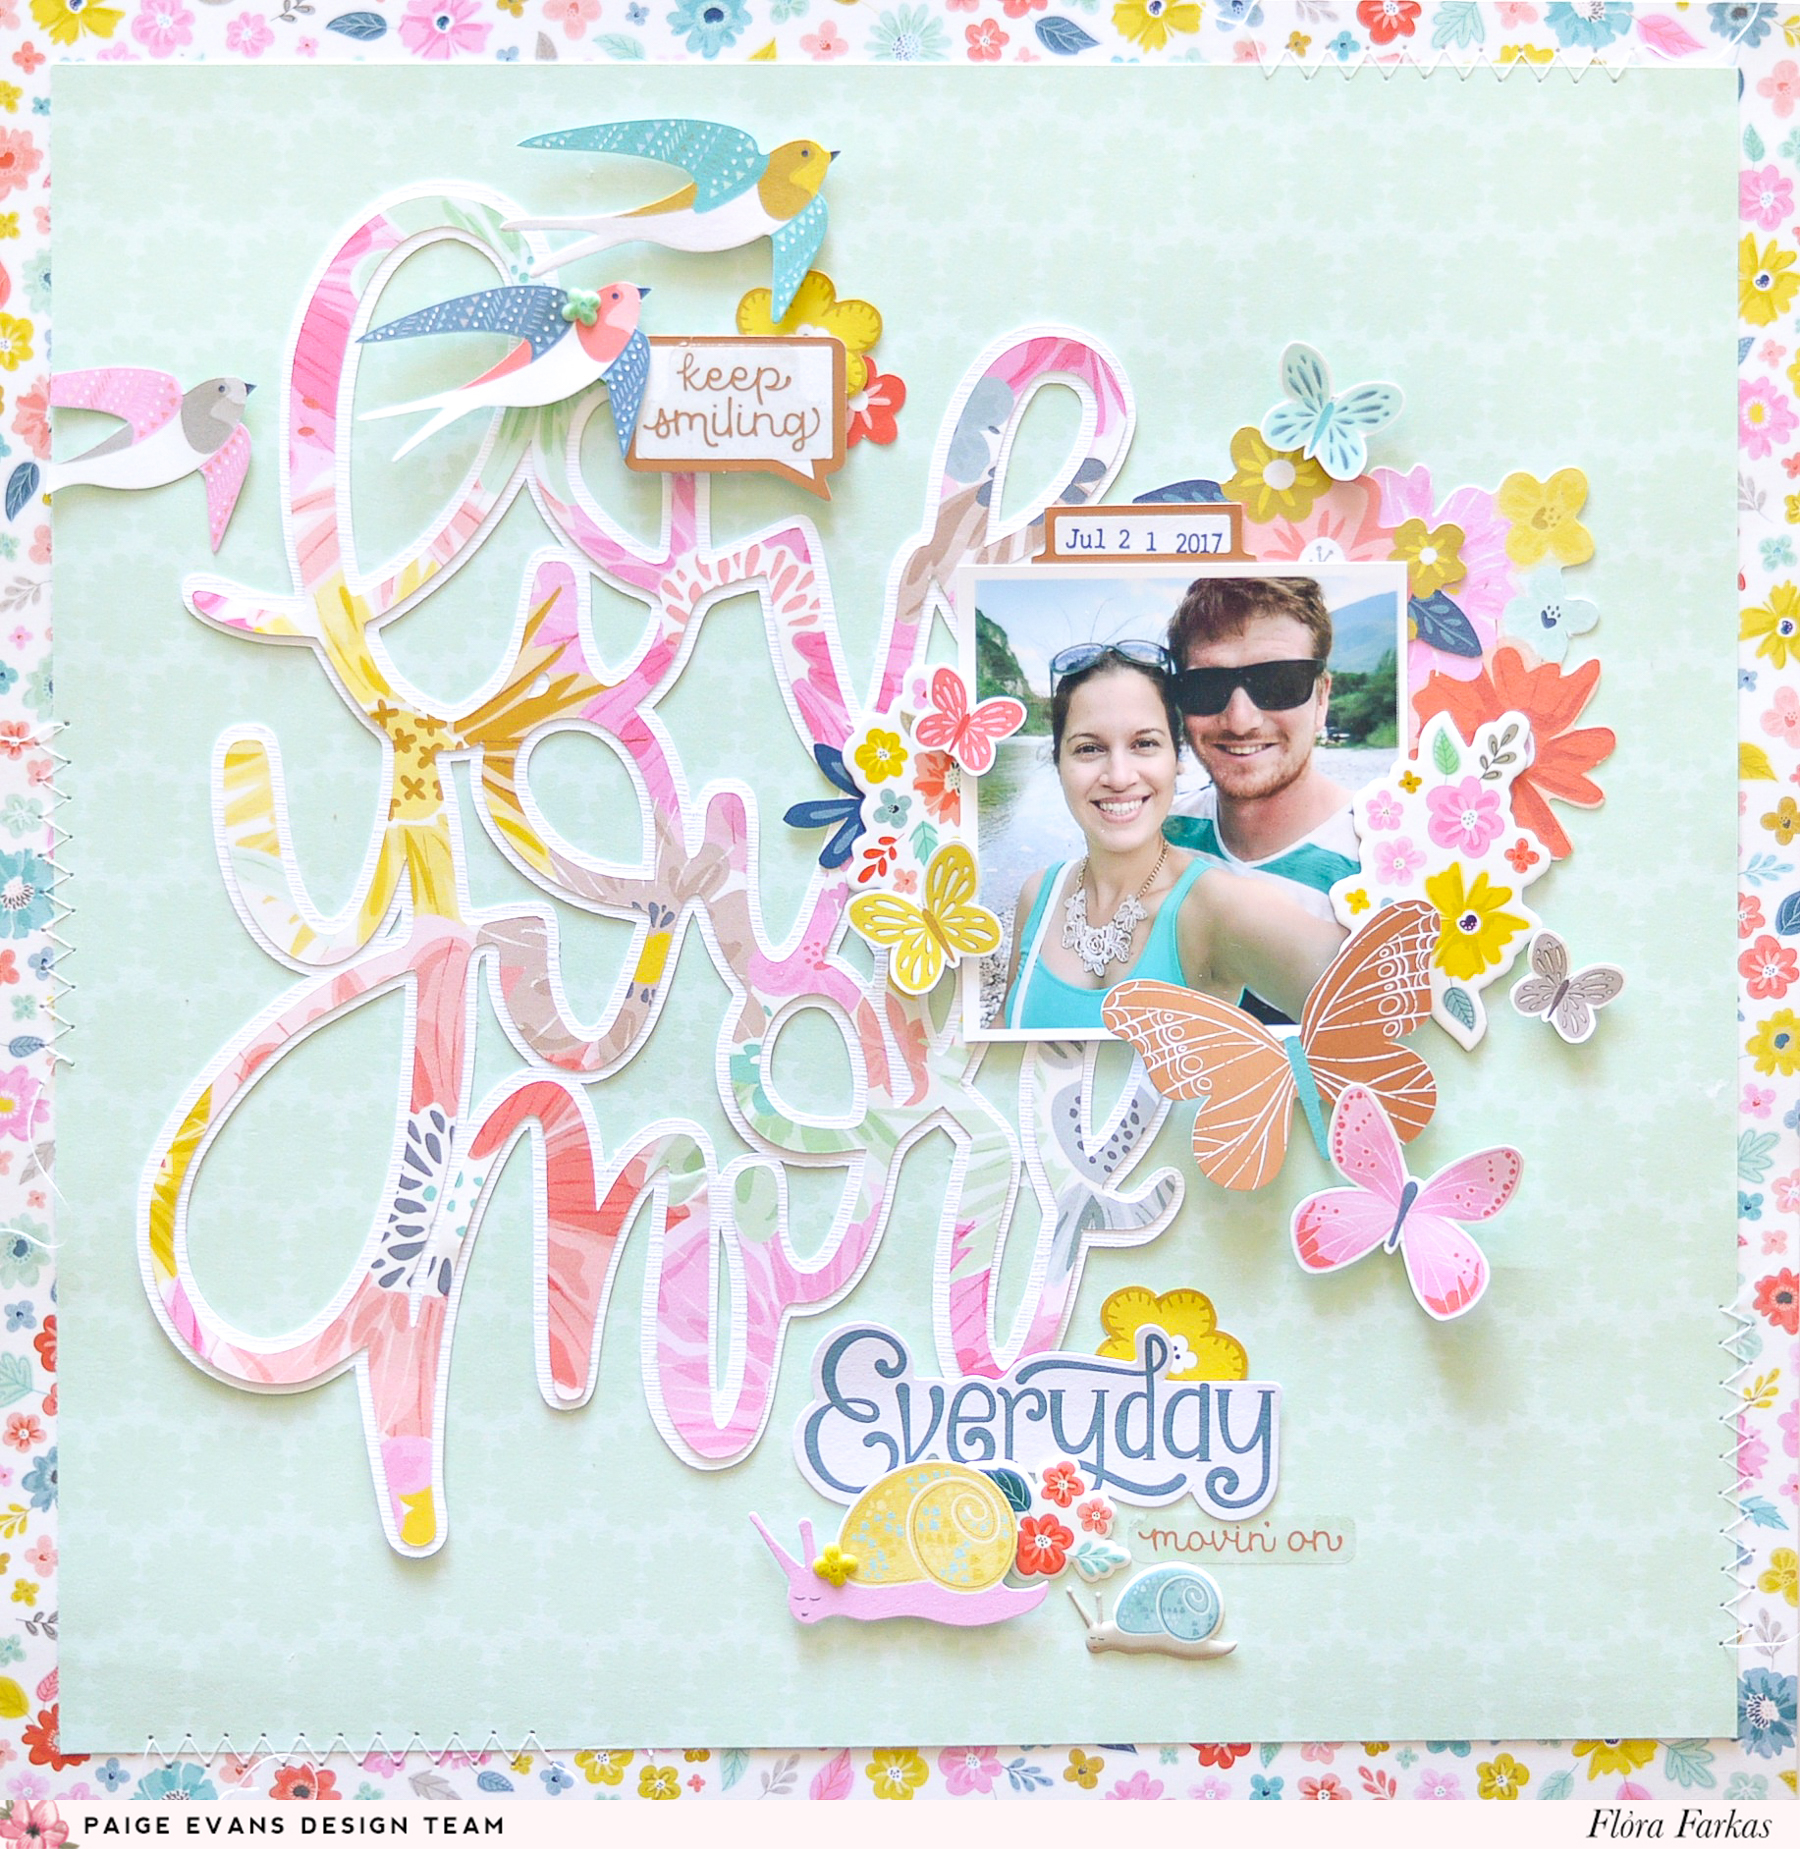 Creative Relationship Scrapbook Ideas 12 Scrapbook Layout Ideas For Couples In Love